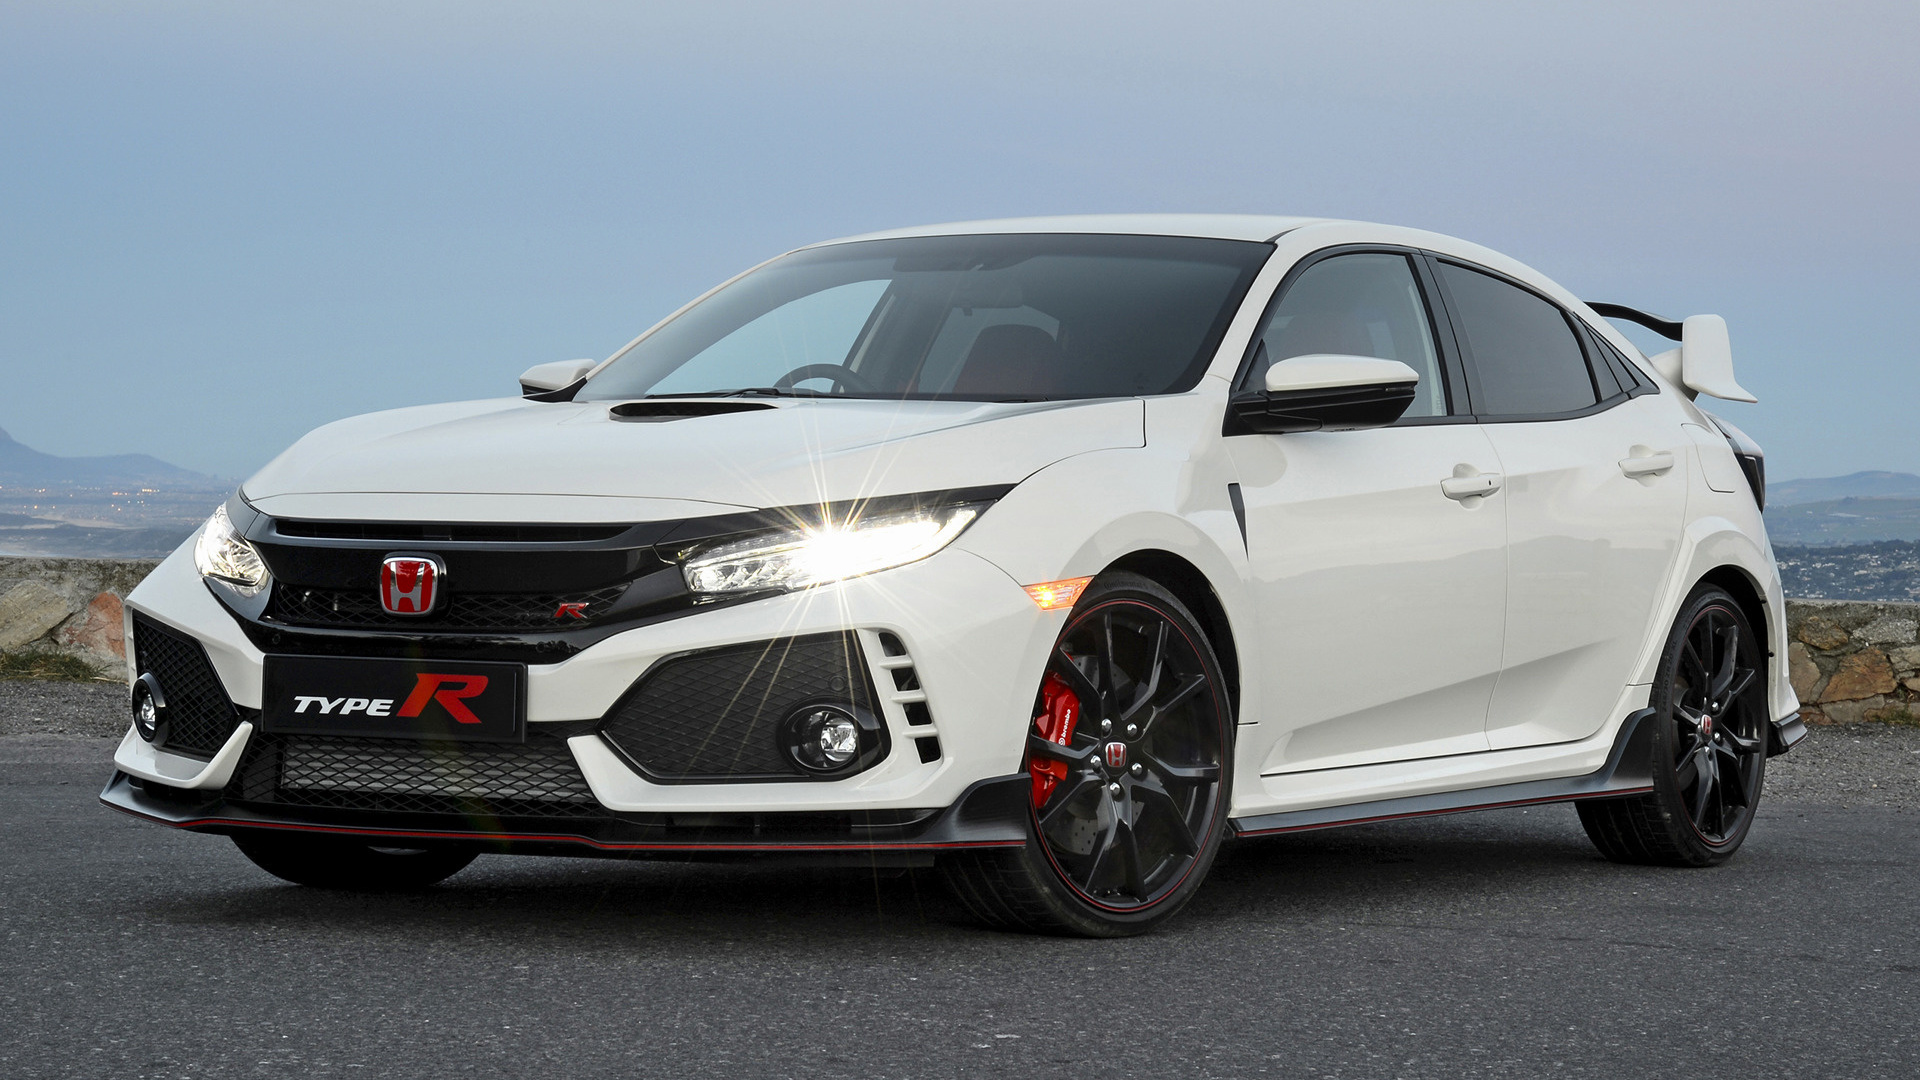 Acura Type R >> 2018 Honda Civic Type R (ZA) - Wallpapers and HD Images | Car Pixel